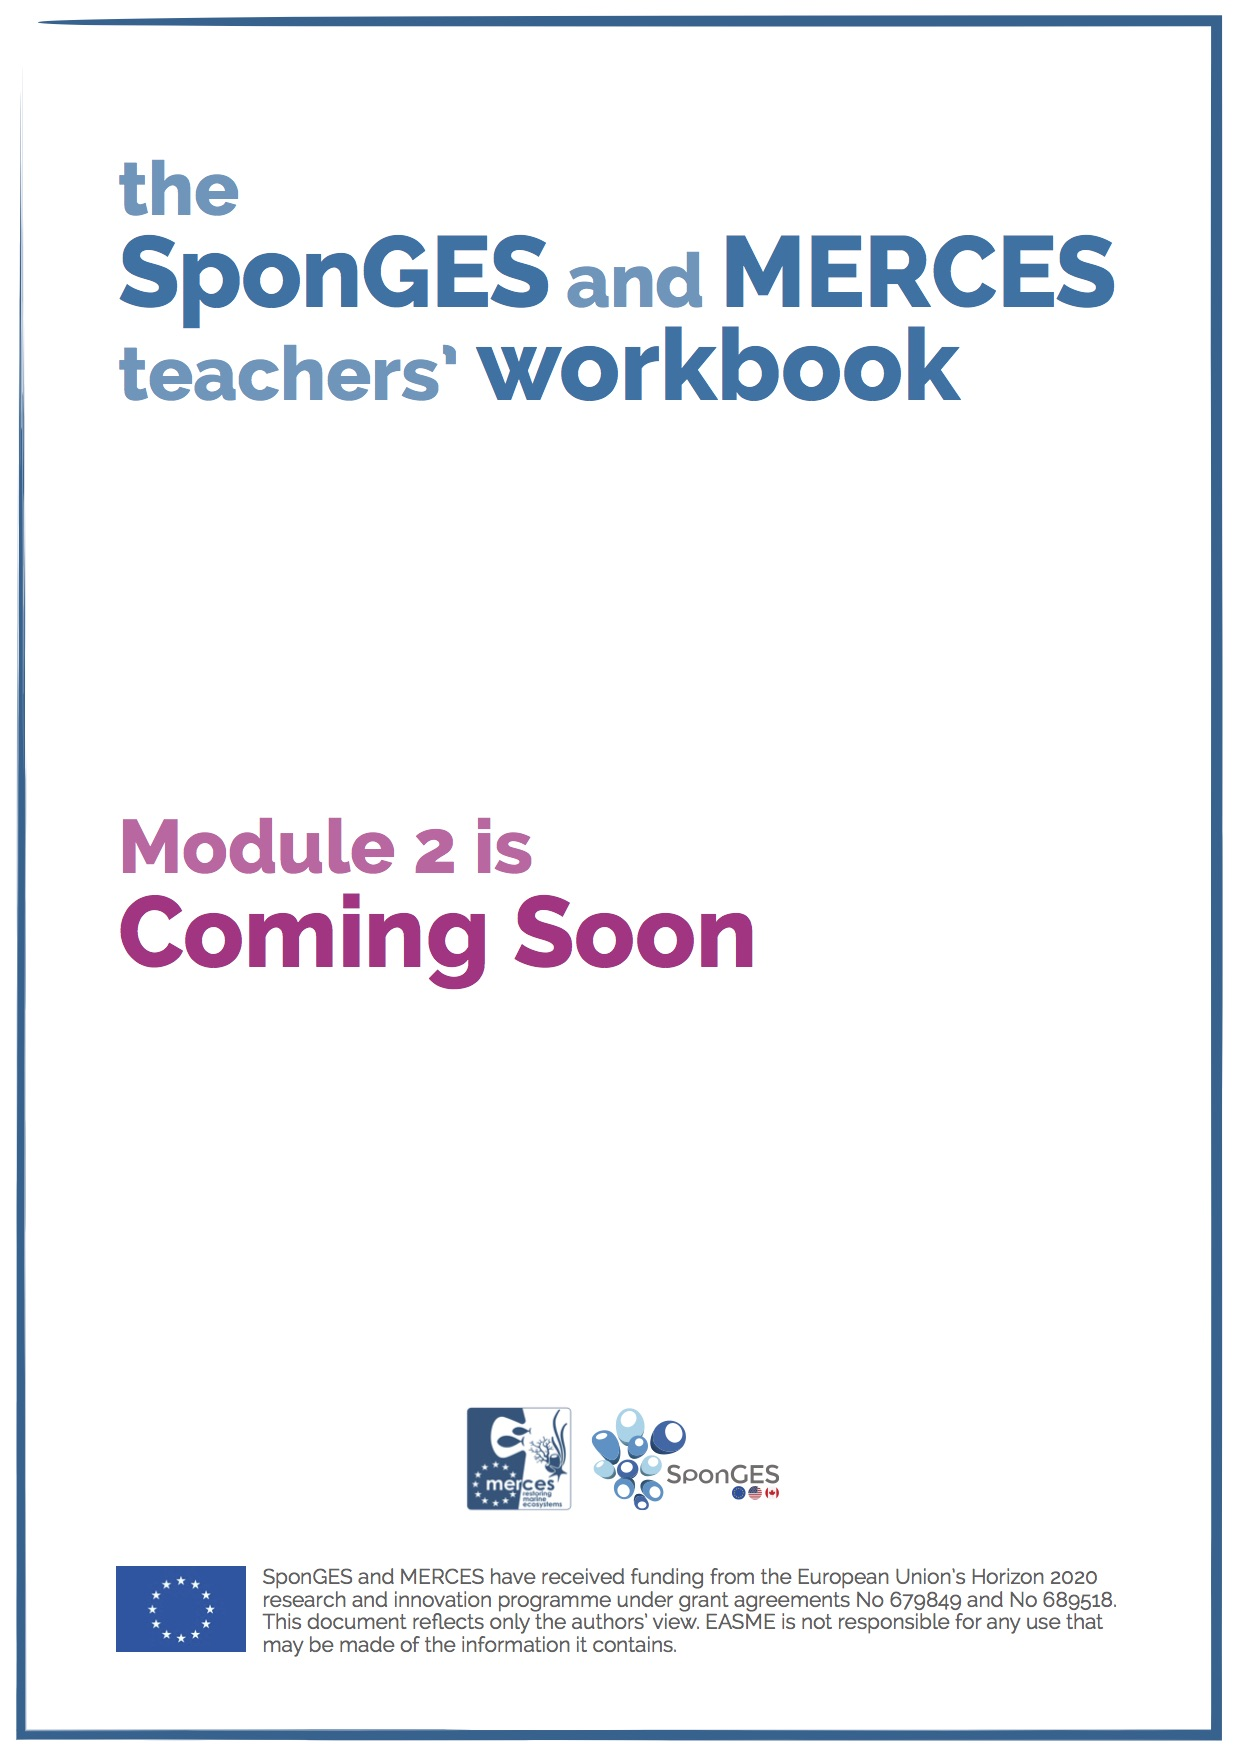 Module 2 of the SponGES and MERCES teachers' workbook